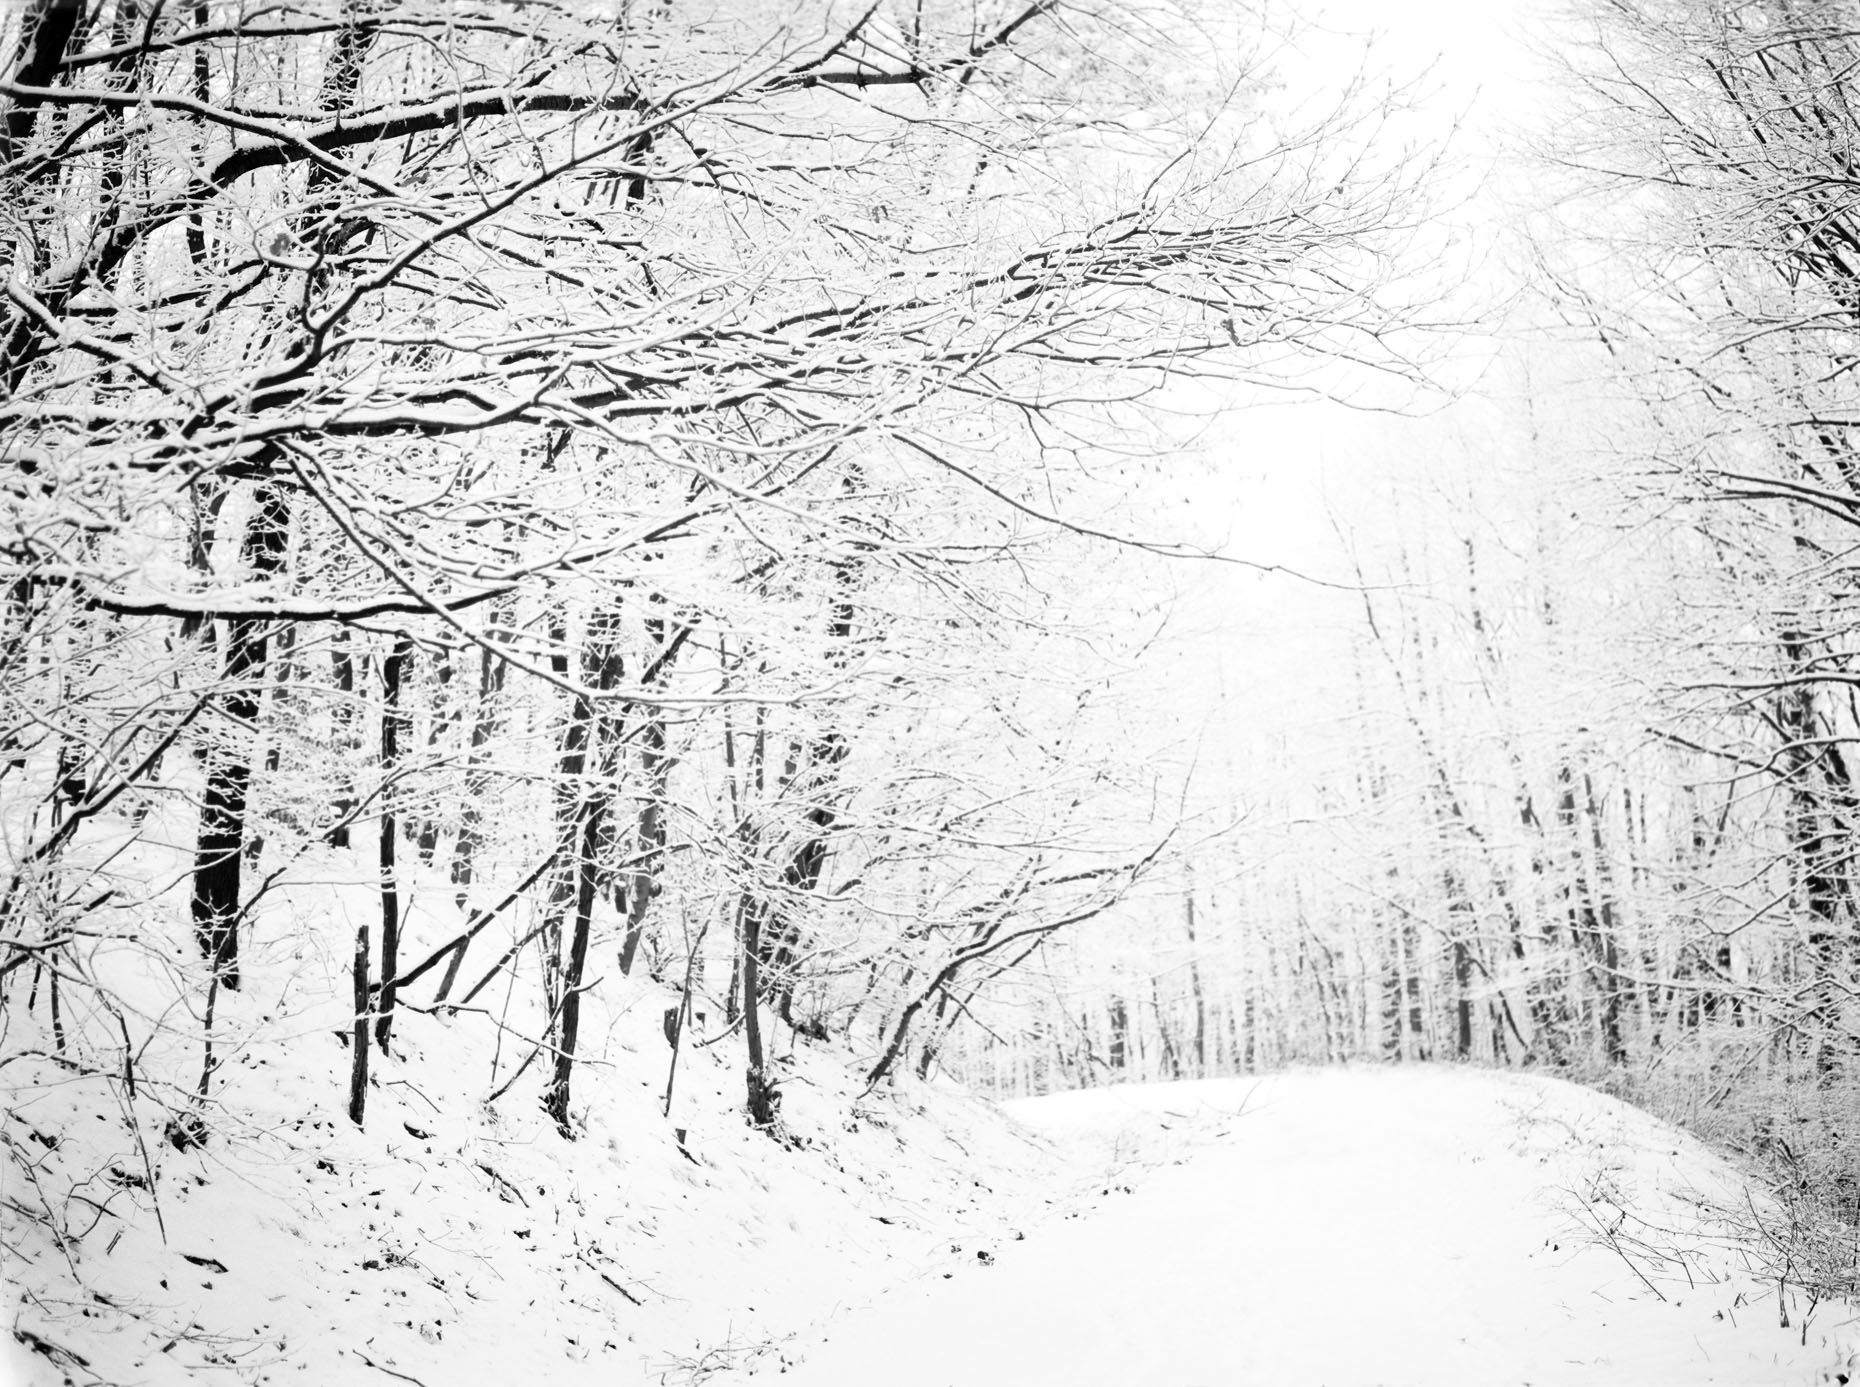 Axel Bernstorff, Snowscape I, Diosjeno, Hungary. Collectable limited edition fine art prints.